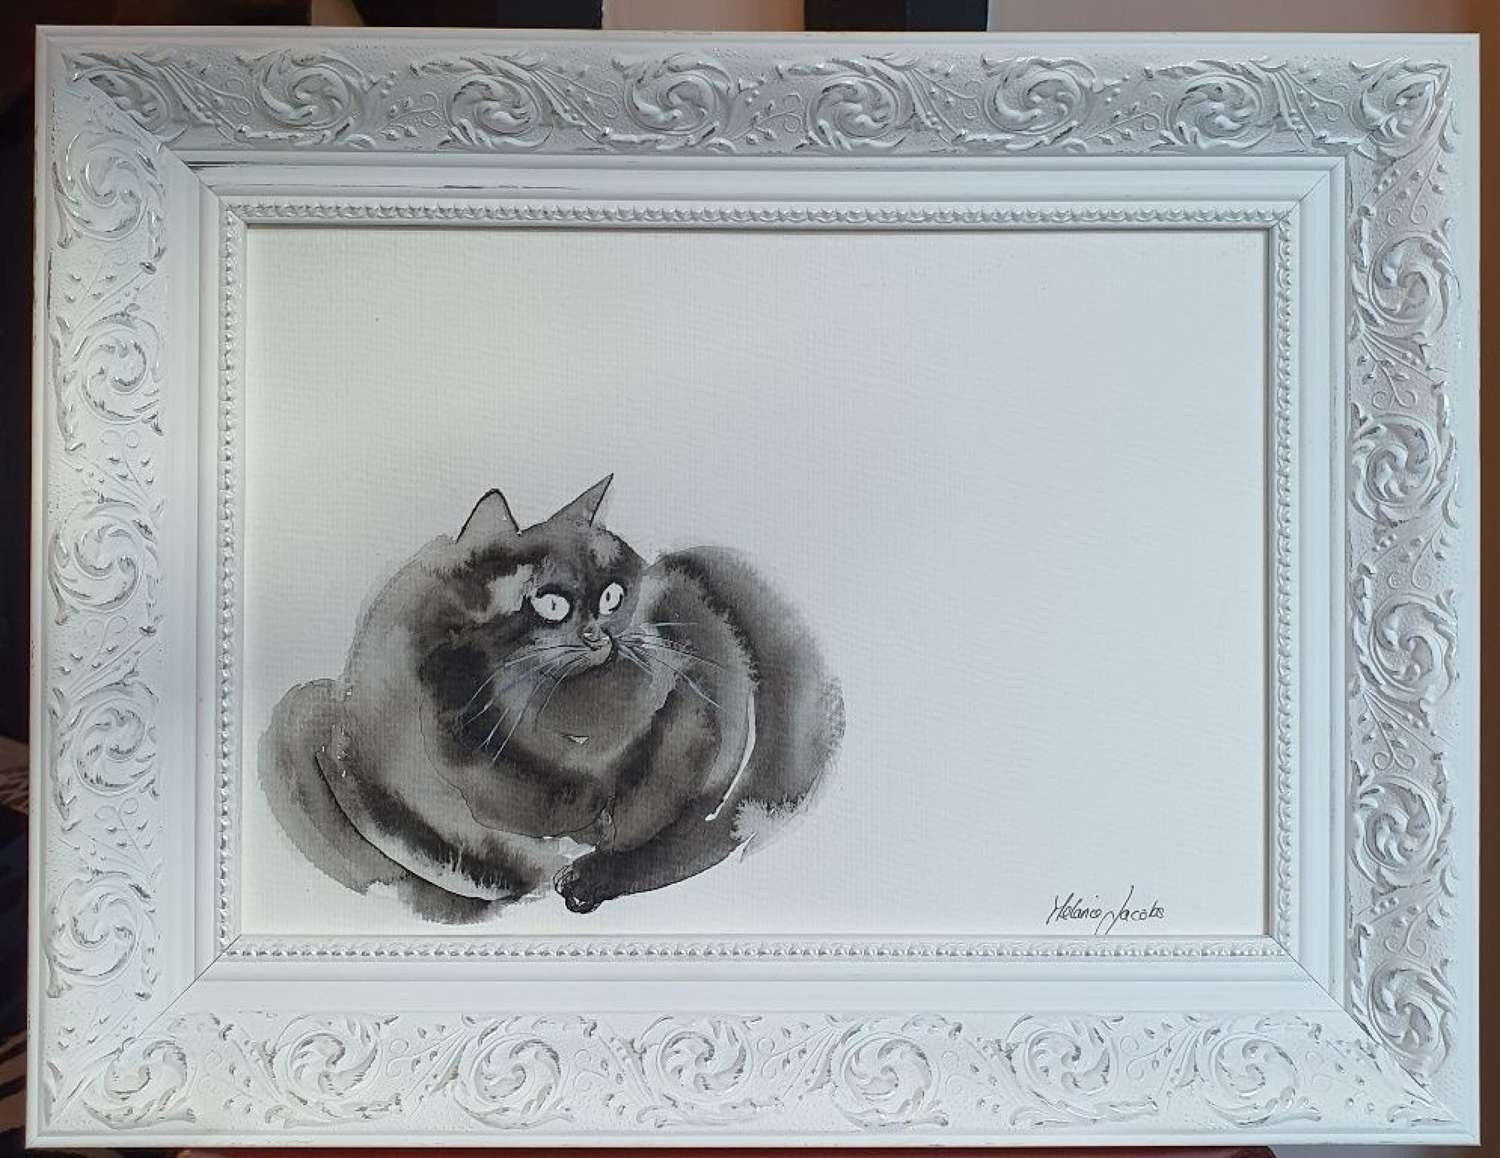 Coco The Cat - Original Ink Painting by Melanie Jacobs